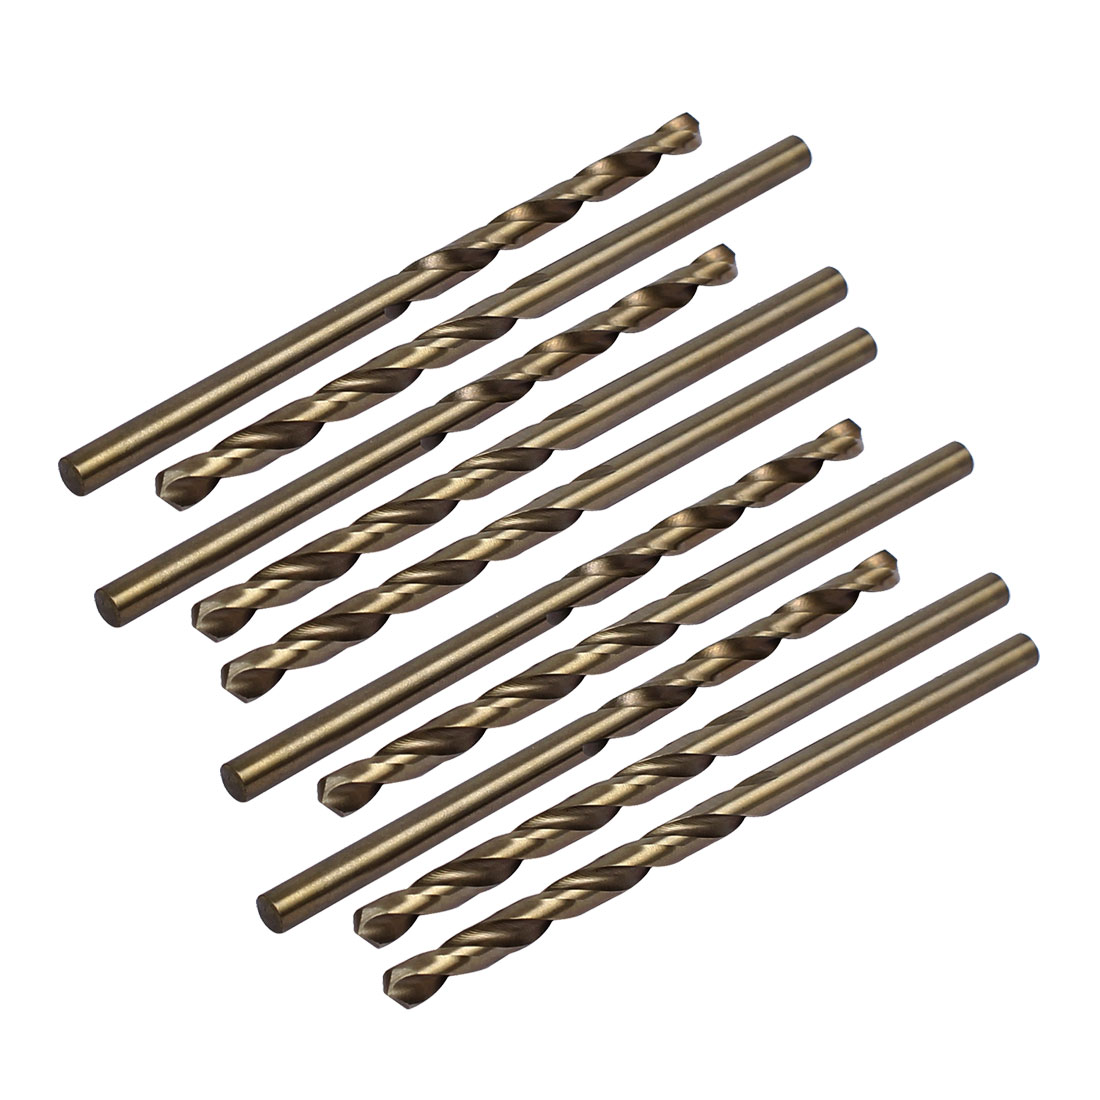 3.5mm Drilling Dia HSS Cobalt Metric Spiral Twist Drill Bit Rotary Tool 10pcs